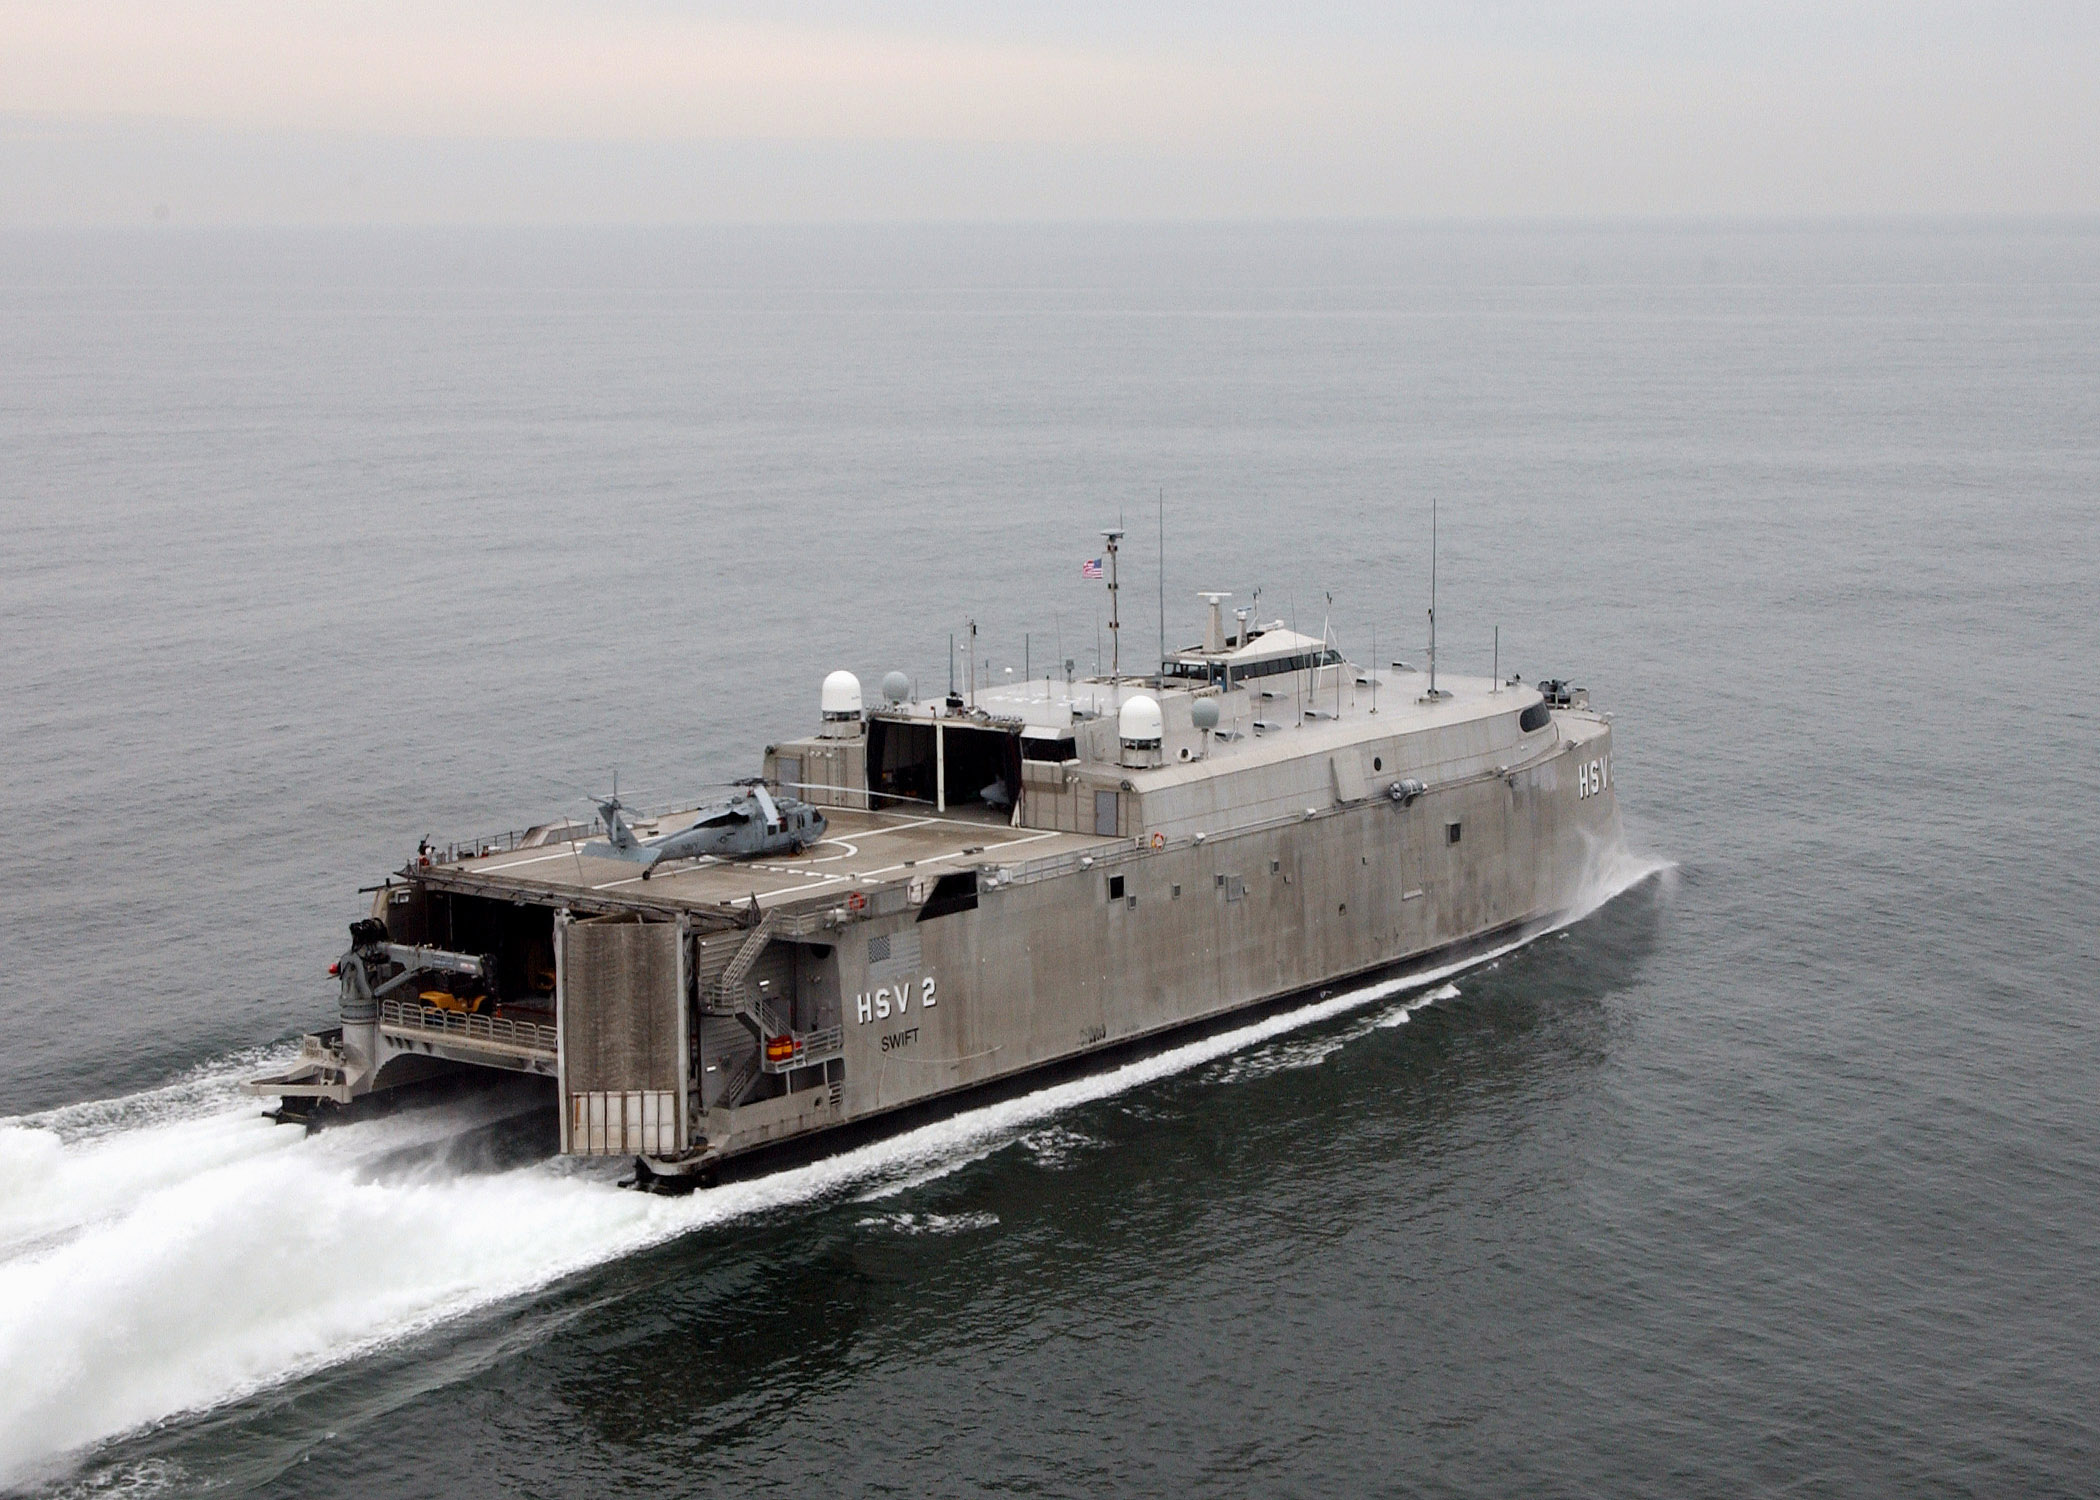 High Speed Vessel Two (hsv 2) Swift Glides Through The Waters Of The ...